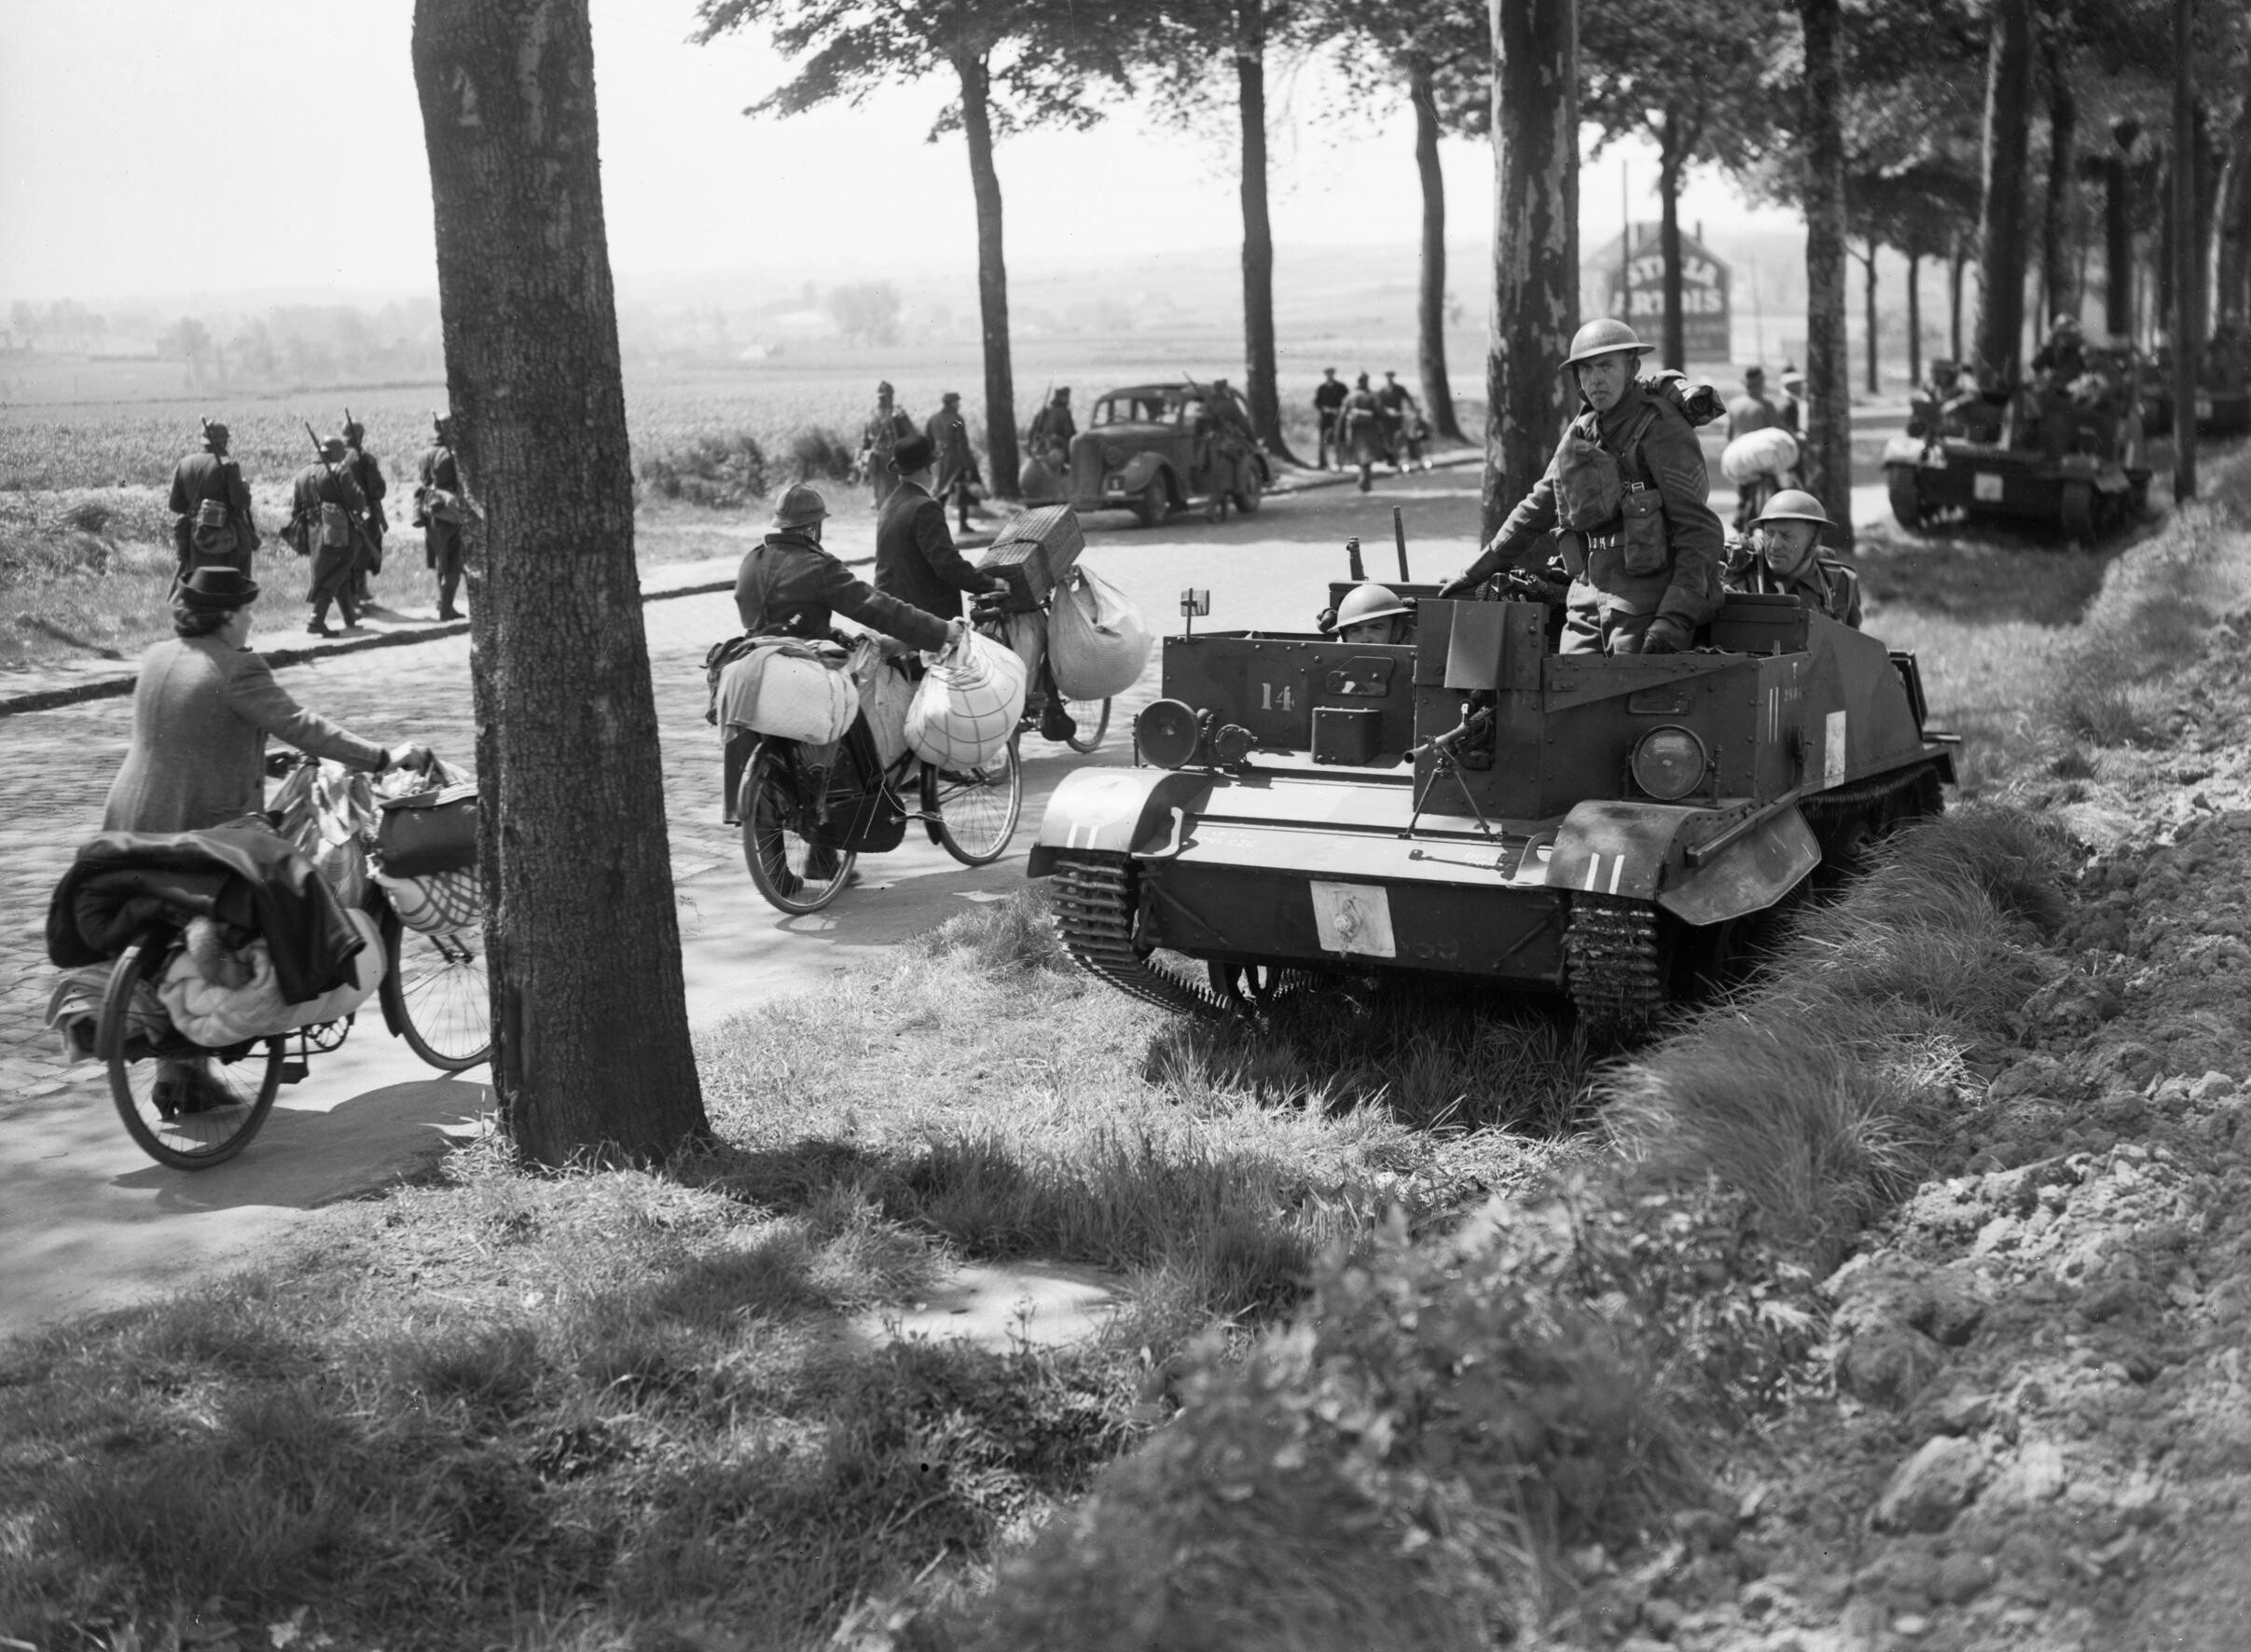 battle of france The battle of france began on 10 may 1940 the germans rendered the maginot line obsolete within a morning by merely skirting round the north of it, through the ardennes forest because of its rugged terrain, the french considered the forest impassable.